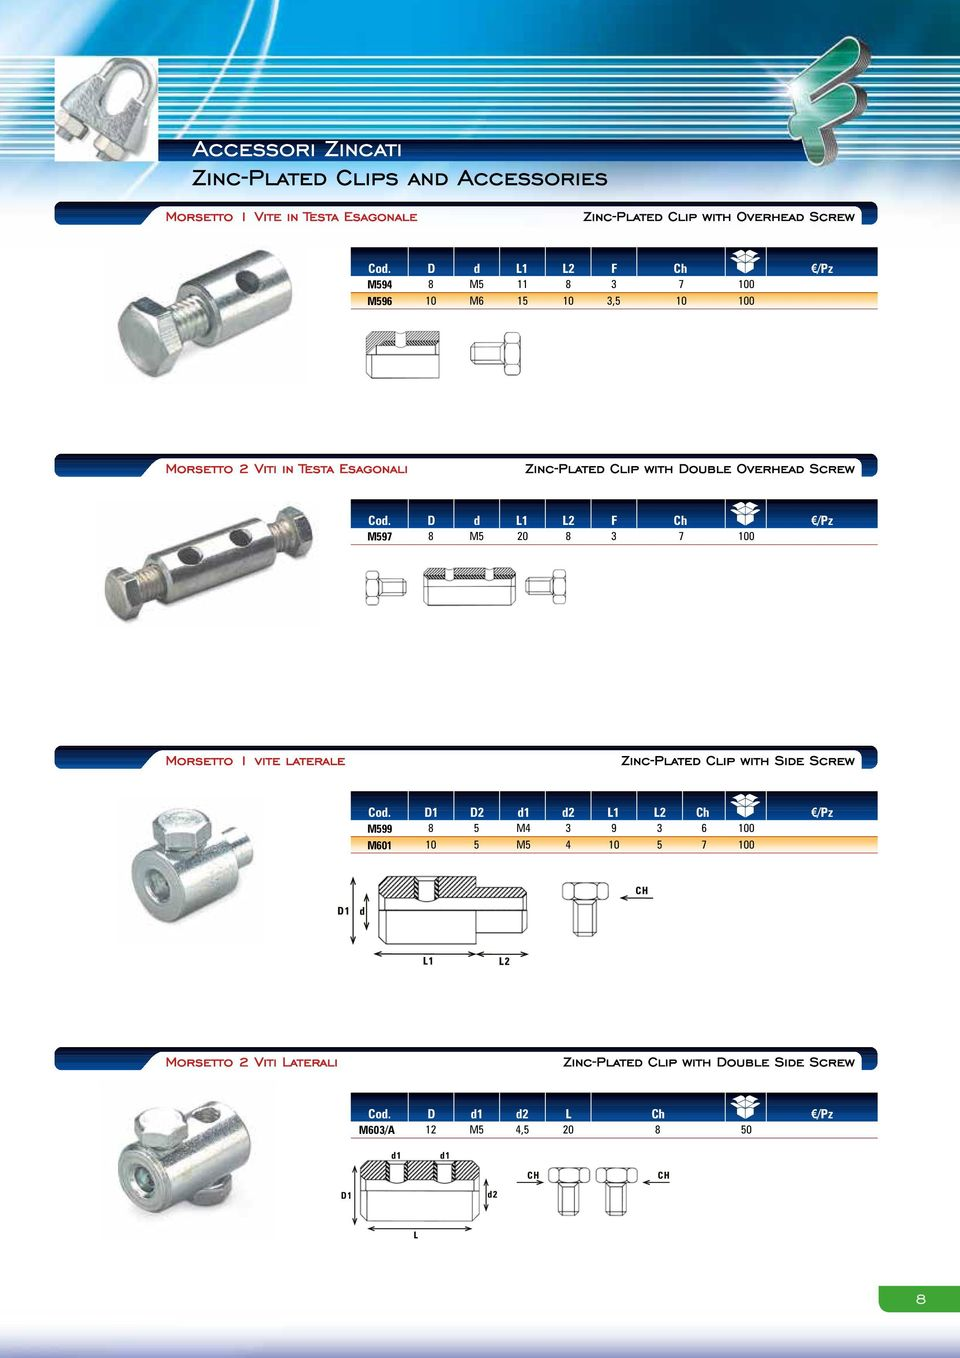 Double Overhead Screw D d L L F Ch M97 M 7 00 Morsetto vite laterale ZincPlated Clip with Side Screw D D d d